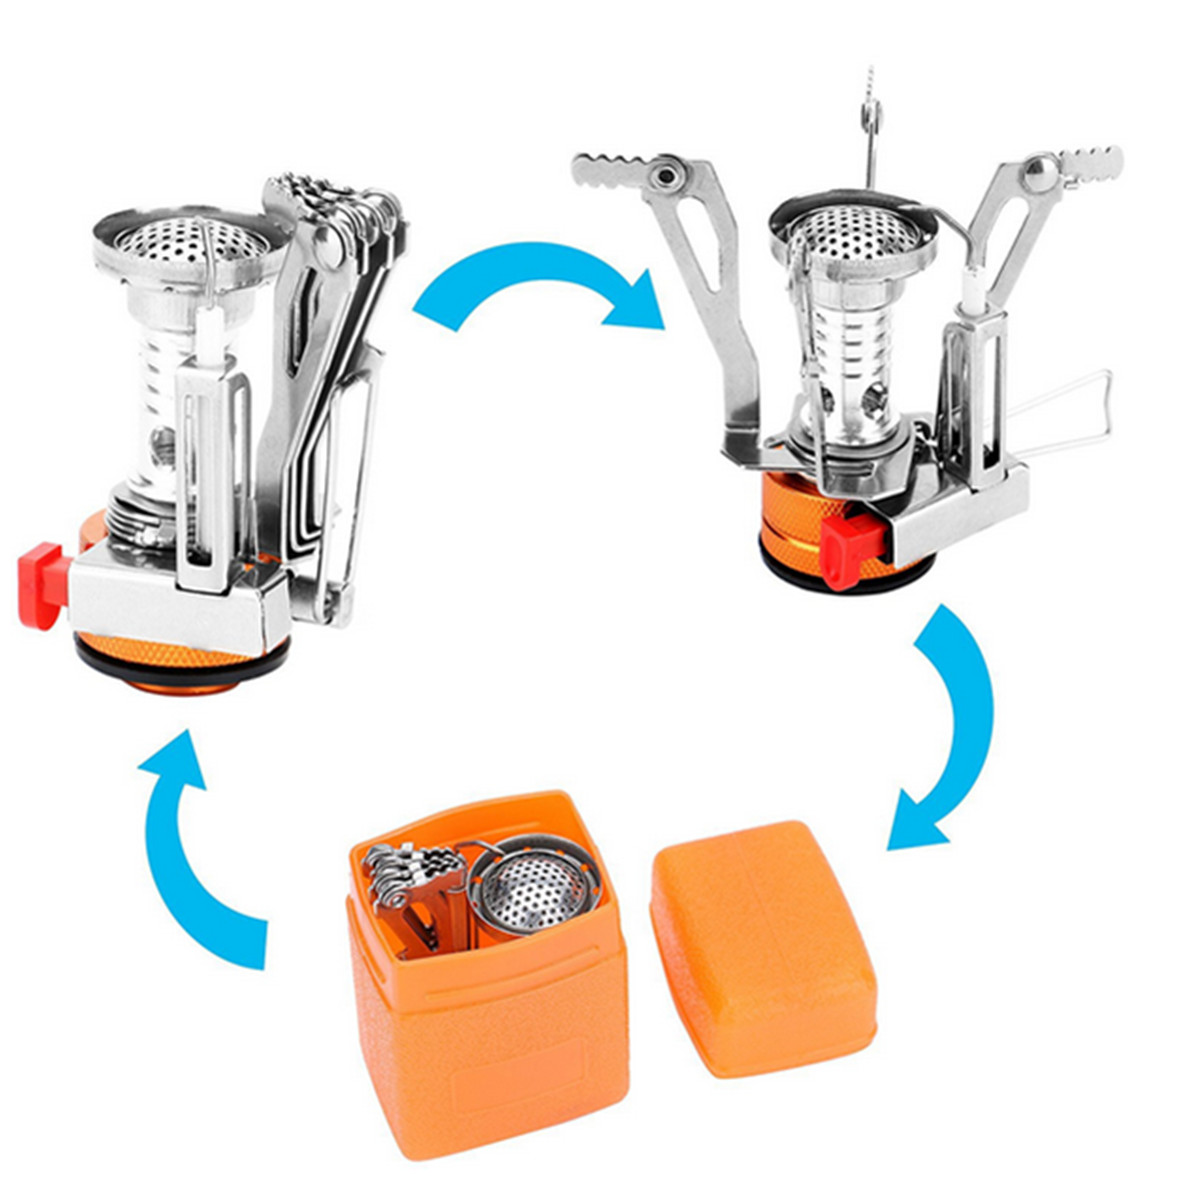 Camping Stove Pot Pan Kit Set for Outdoor Camping Backpacking Hiking Cooking Equipment